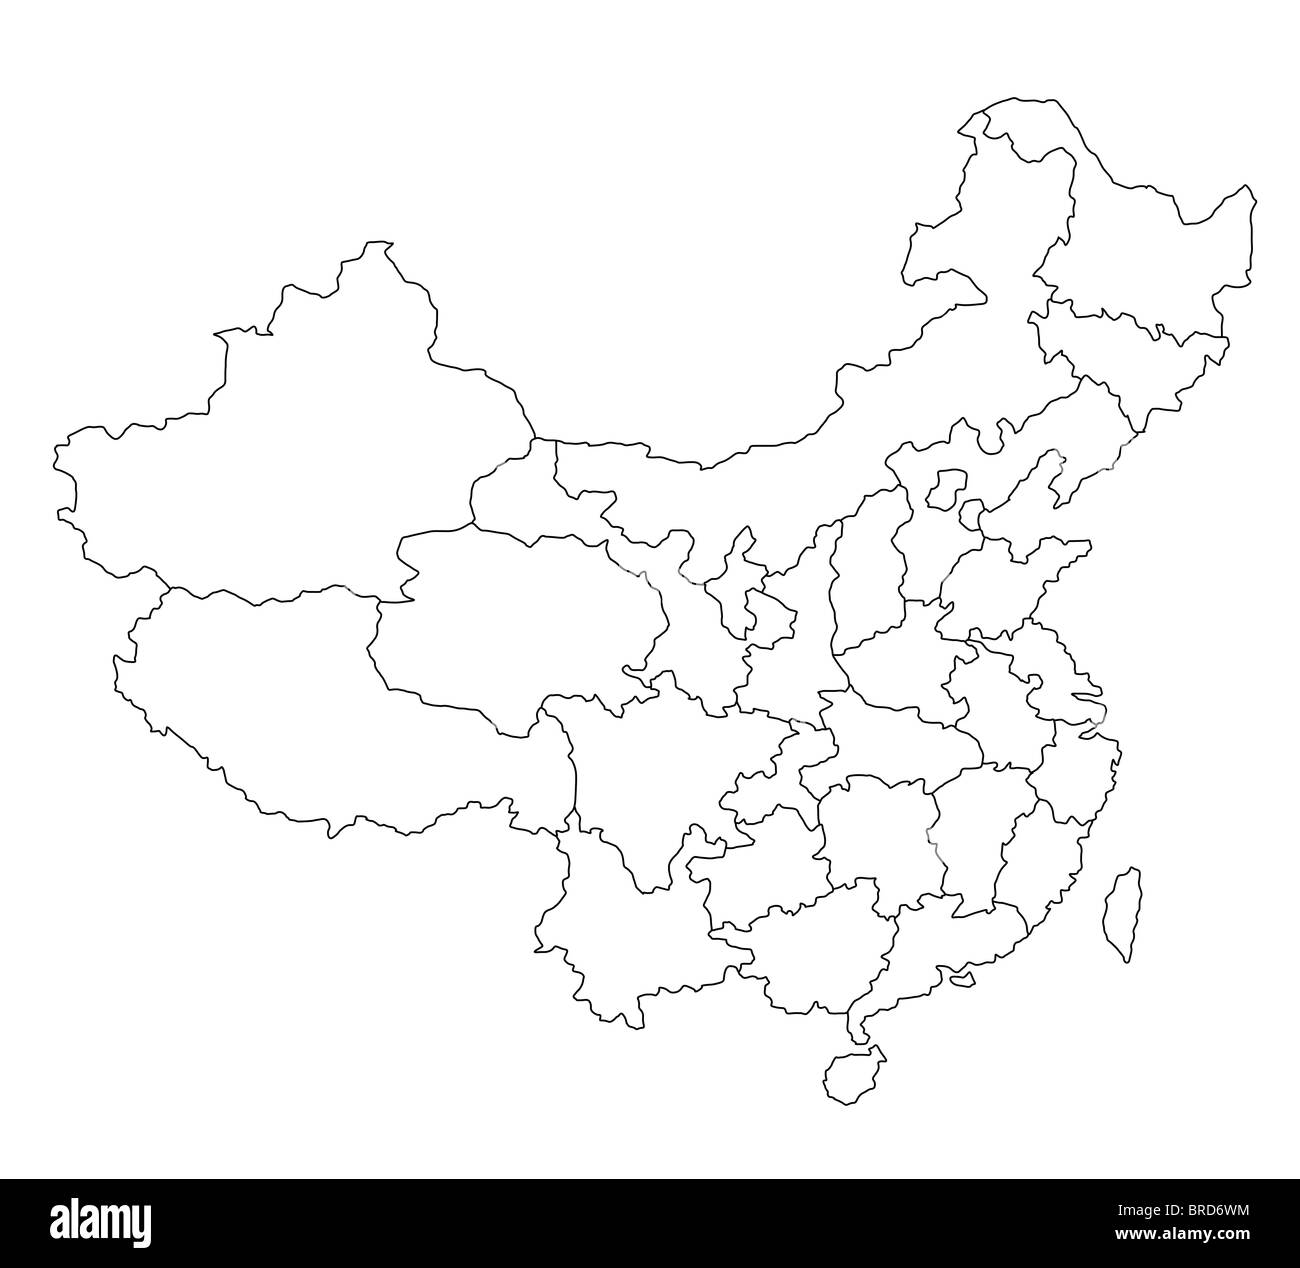 A Stylized Blank Map Of China All Isolated On White